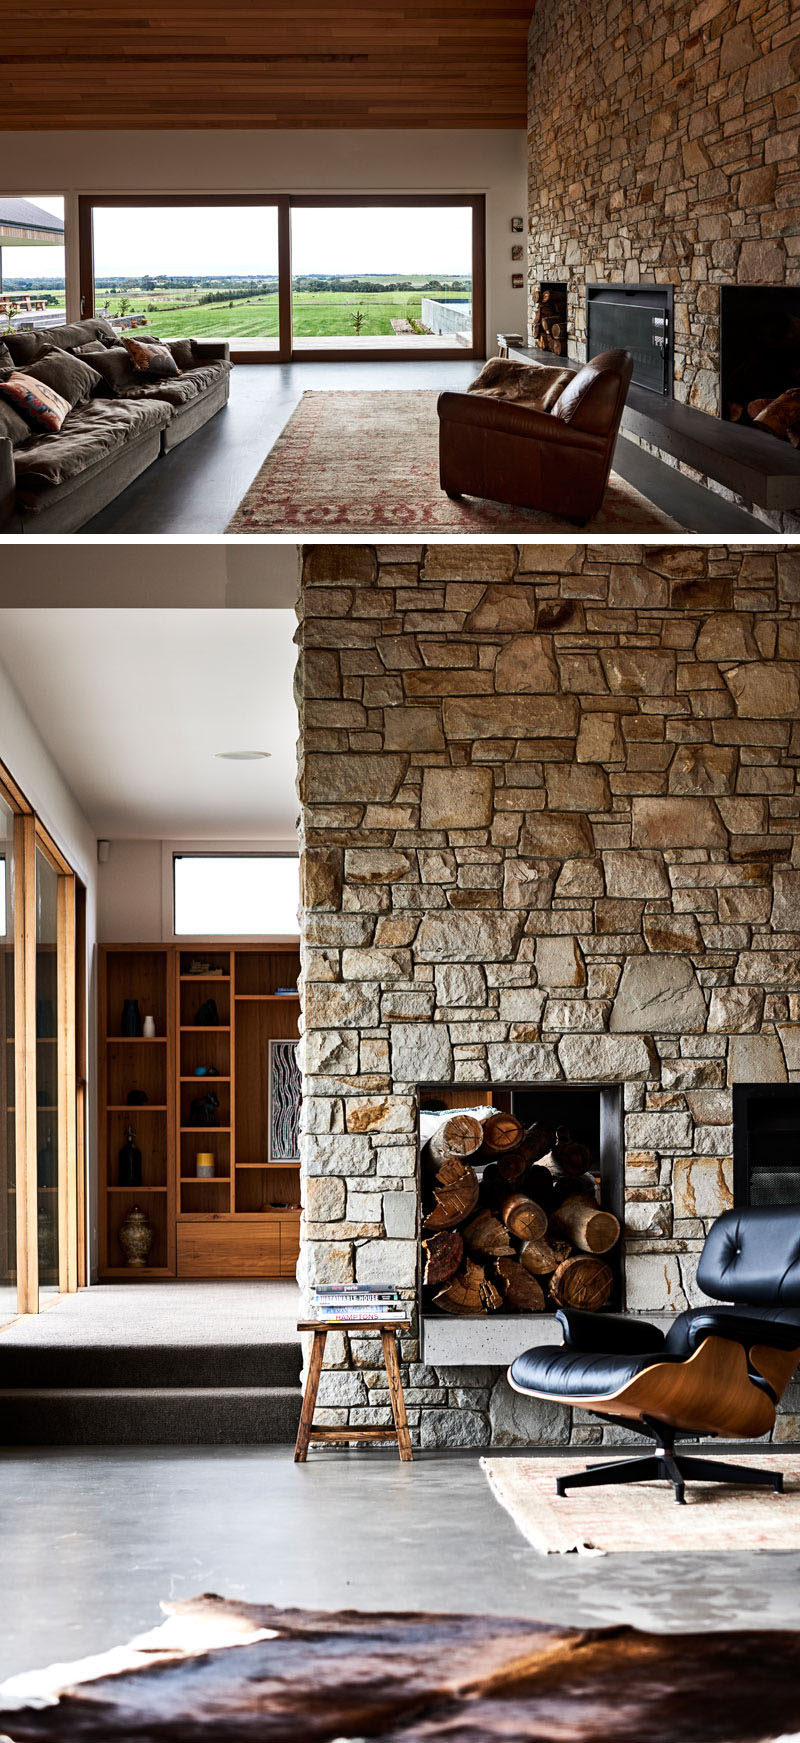 This double-sided fireplace has been crafted out of Mt Angus sandstone, while wood storage with raw steel sheeting have been positioned on each side of the fireplace. #DoubleSidedFireplace #StoneFireplace #InteriorDesign #LivingRoom